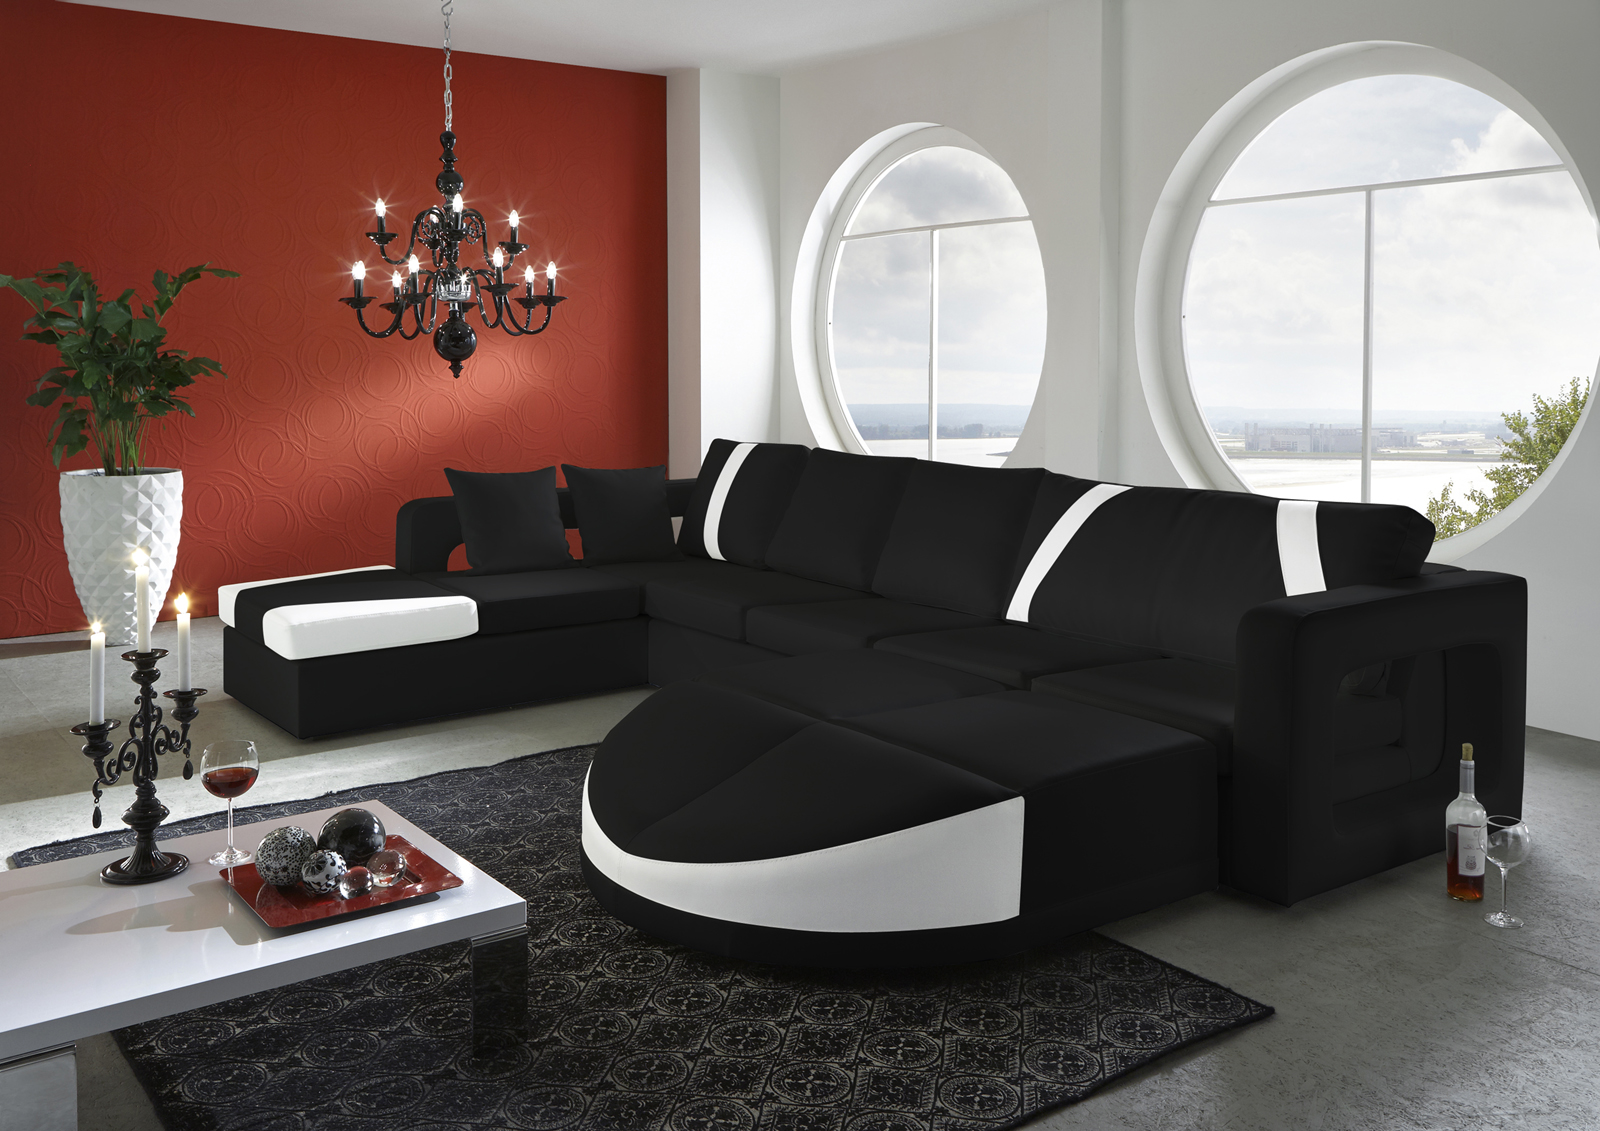 sam sofa schwarz wei diamante wohnlandschaft 215 x 336 x 210 cm links bestellw. Black Bedroom Furniture Sets. Home Design Ideas